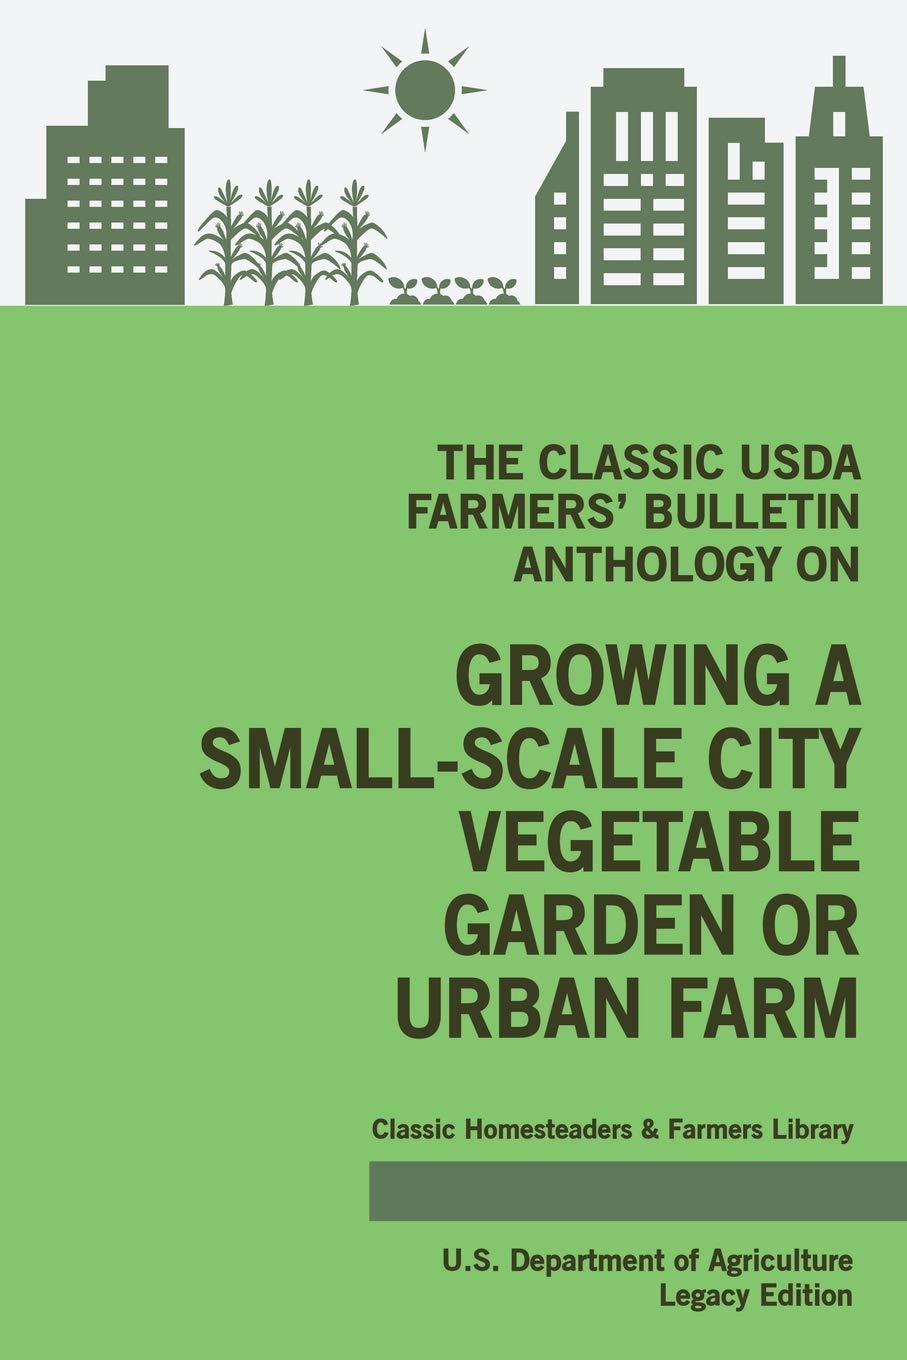 The Classic USDA Farmers' Bulletin Anthology on Growing a Small-Scale City Vegetable Garden or Urban Farm